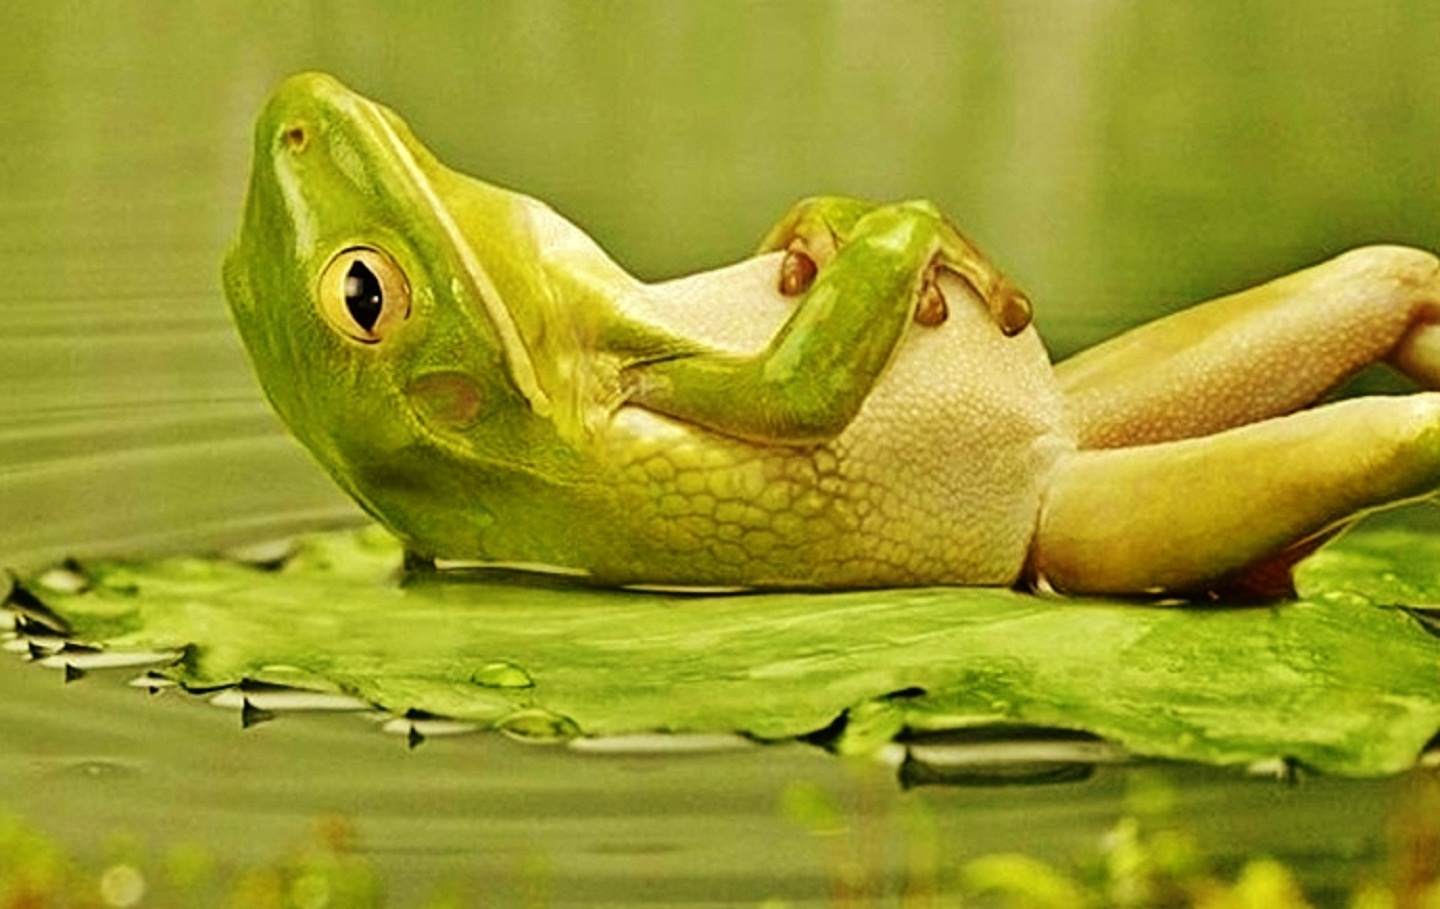 Beautiful Frog Wallpaper Download For Free Goats Animal: Free Frog Wallpapers And Screensavers